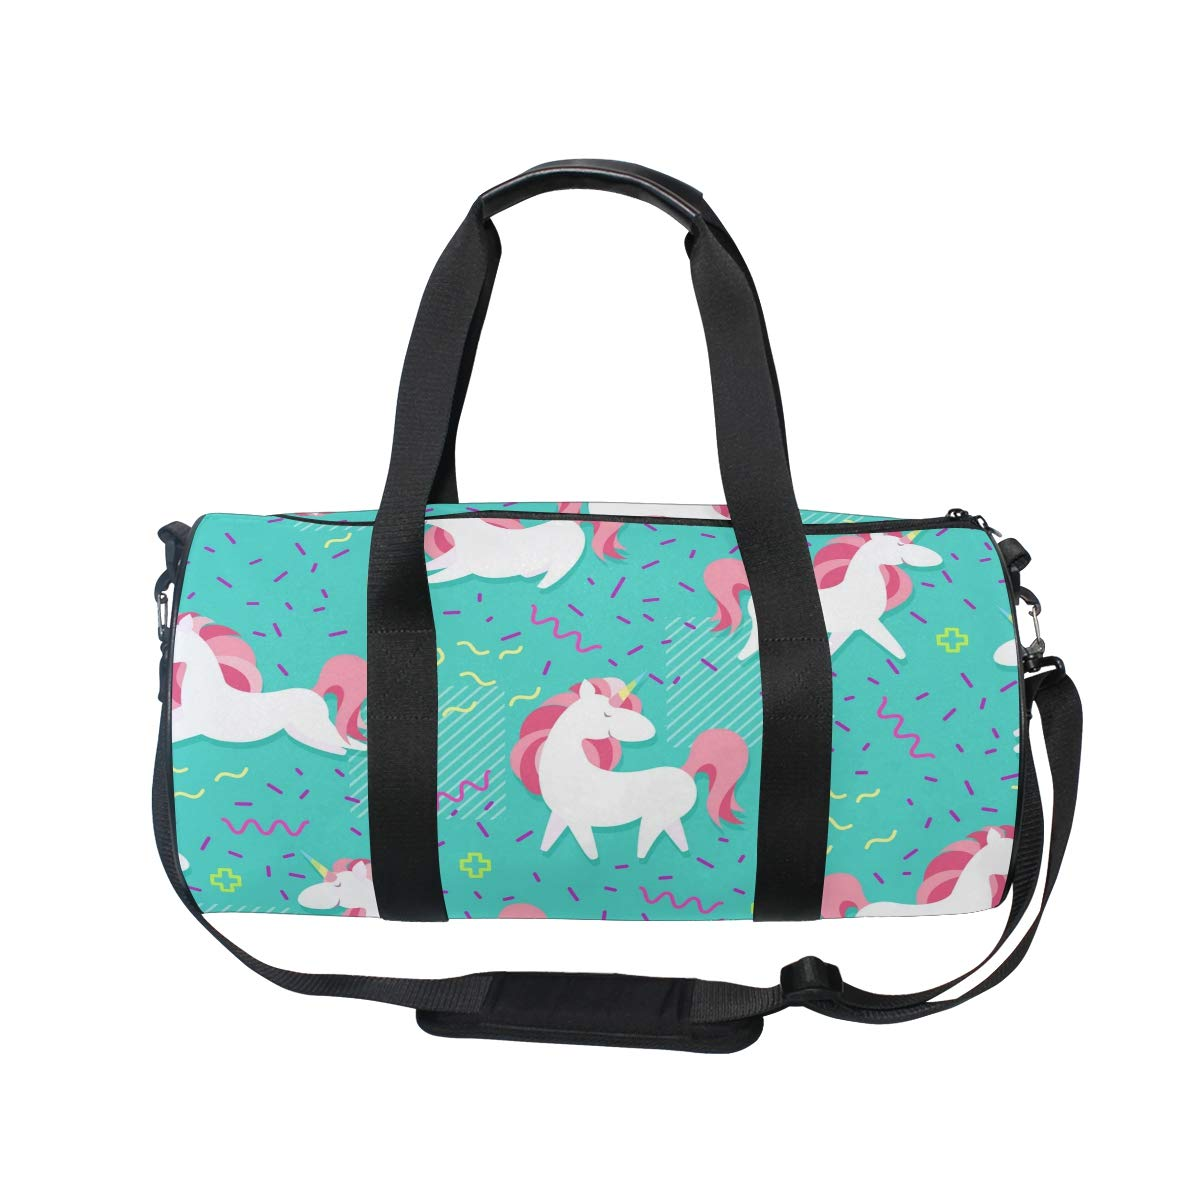 WIHVE Gym Duffel Bag Magic Unicorn With Rainbow Horn Hearts Wings Memphis Sports Lightweight Canvas Travel Luggage Bag